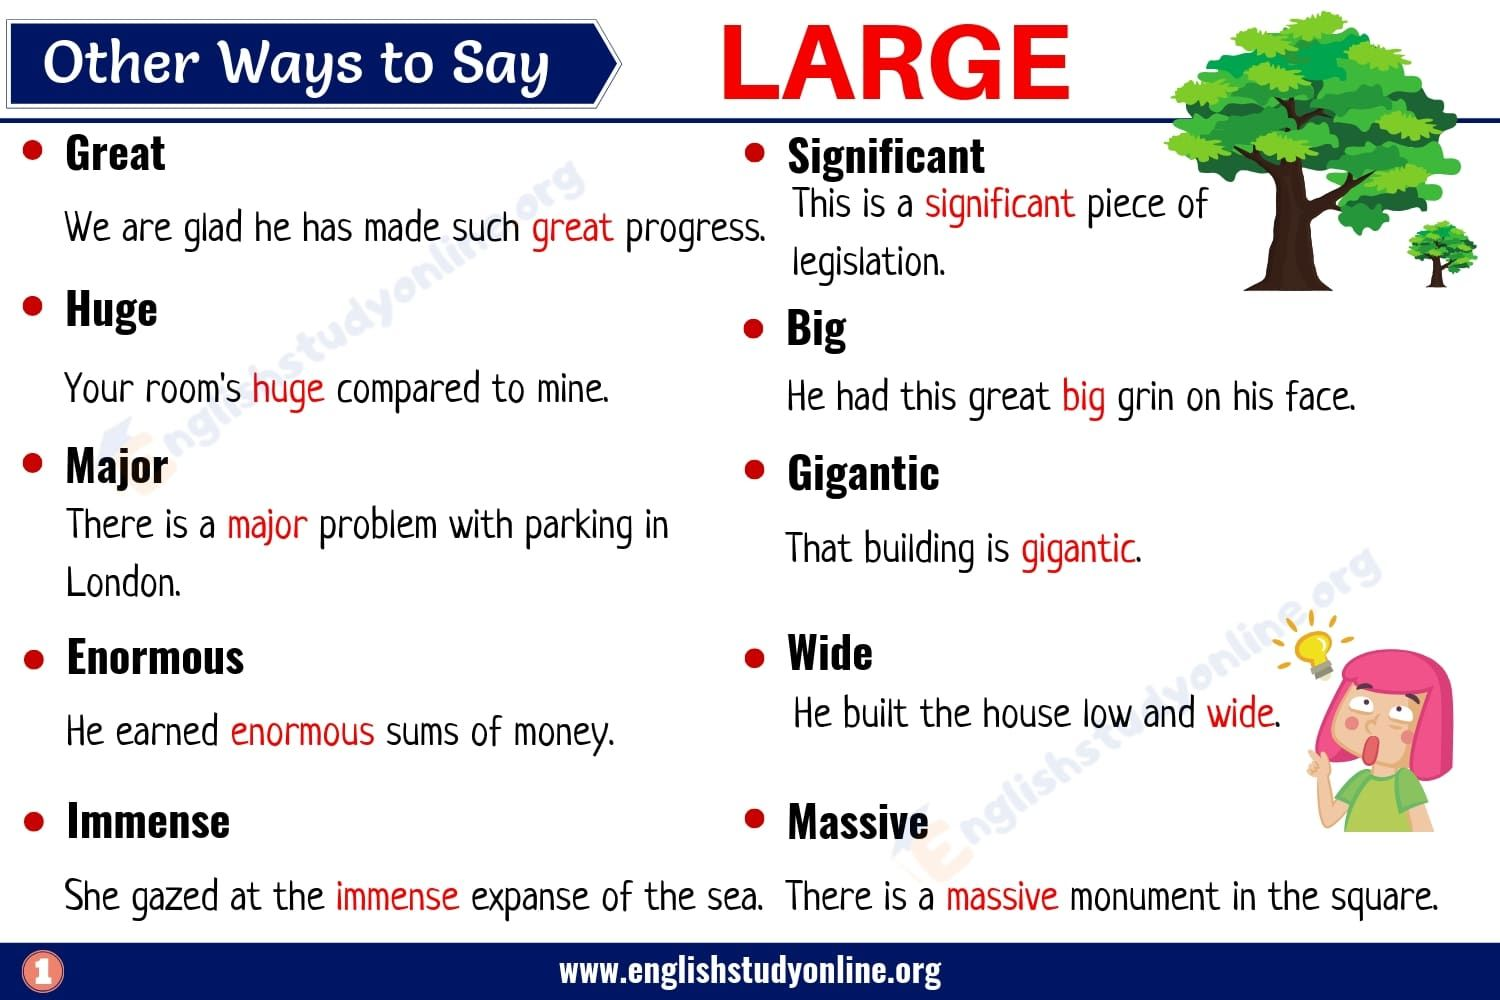 Large Synonym List of 25+ Useful Synonyms for the Word